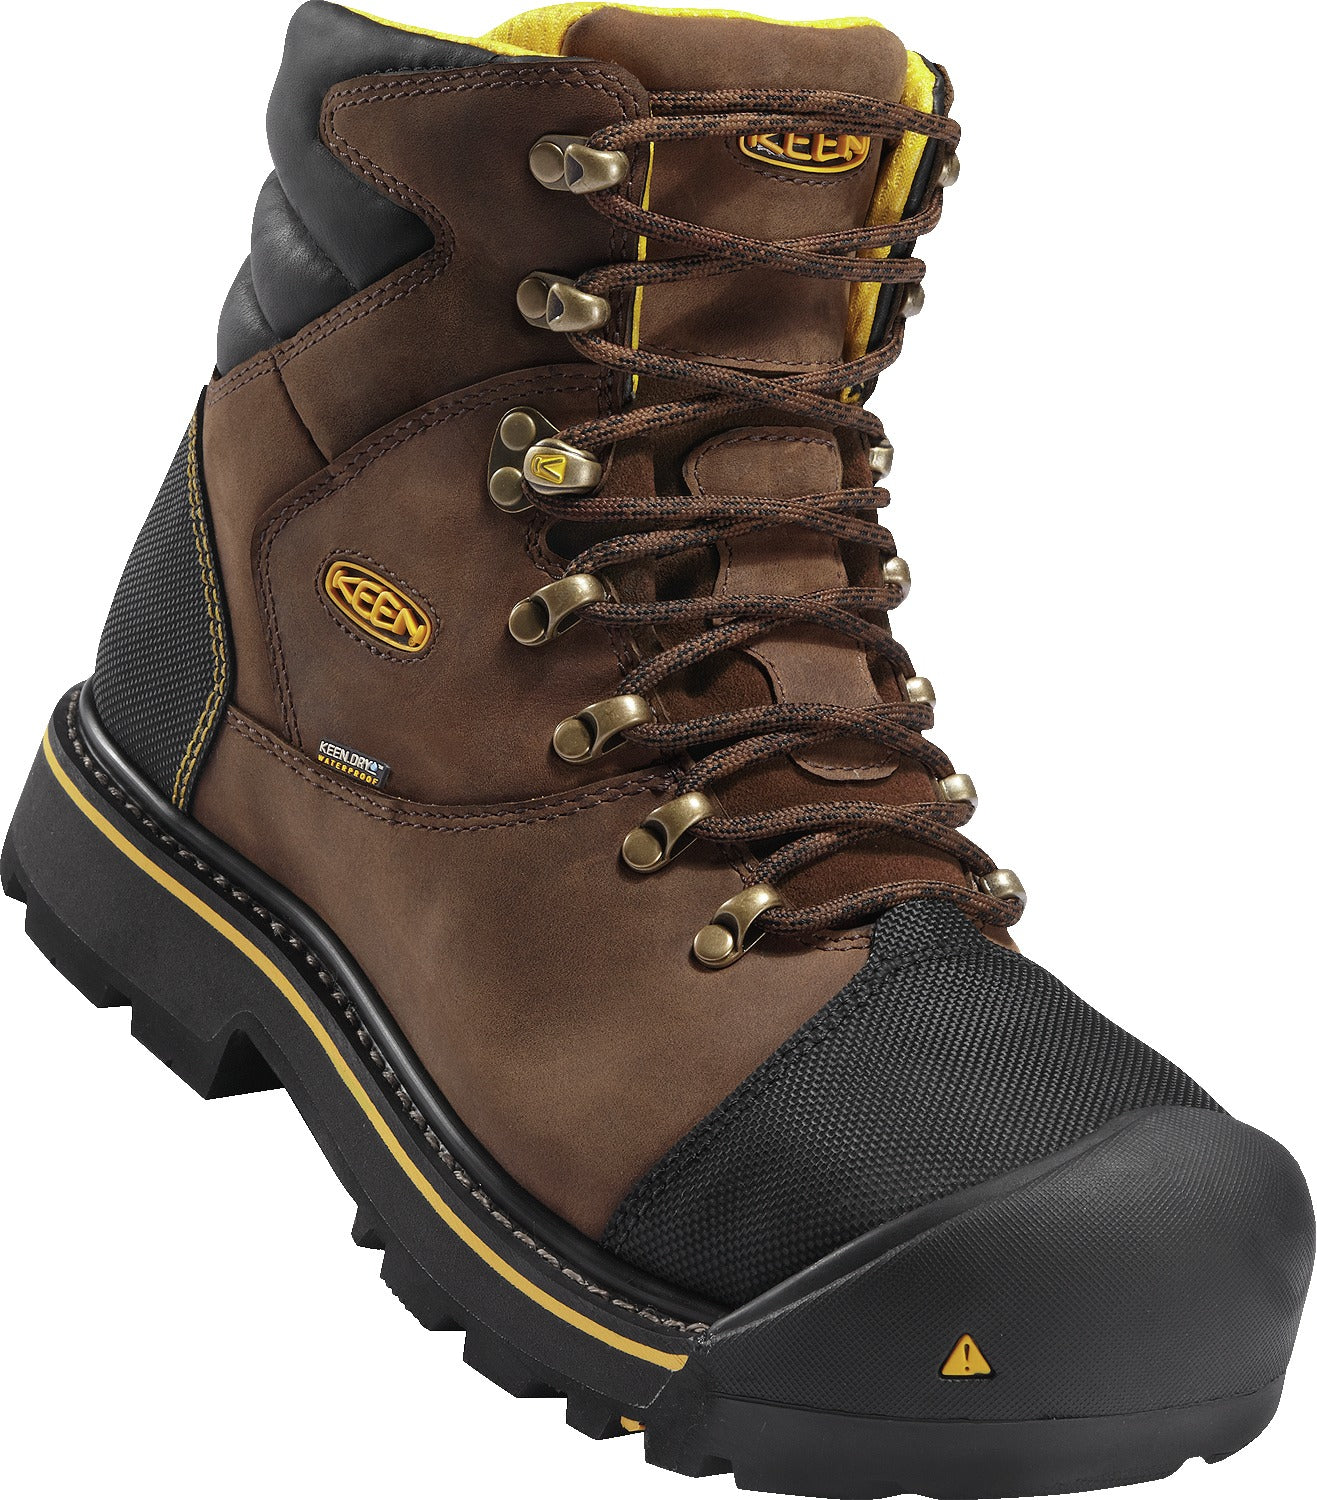 Milwaukee Waterproof Steel Toe - Dark Earth Brown / Black